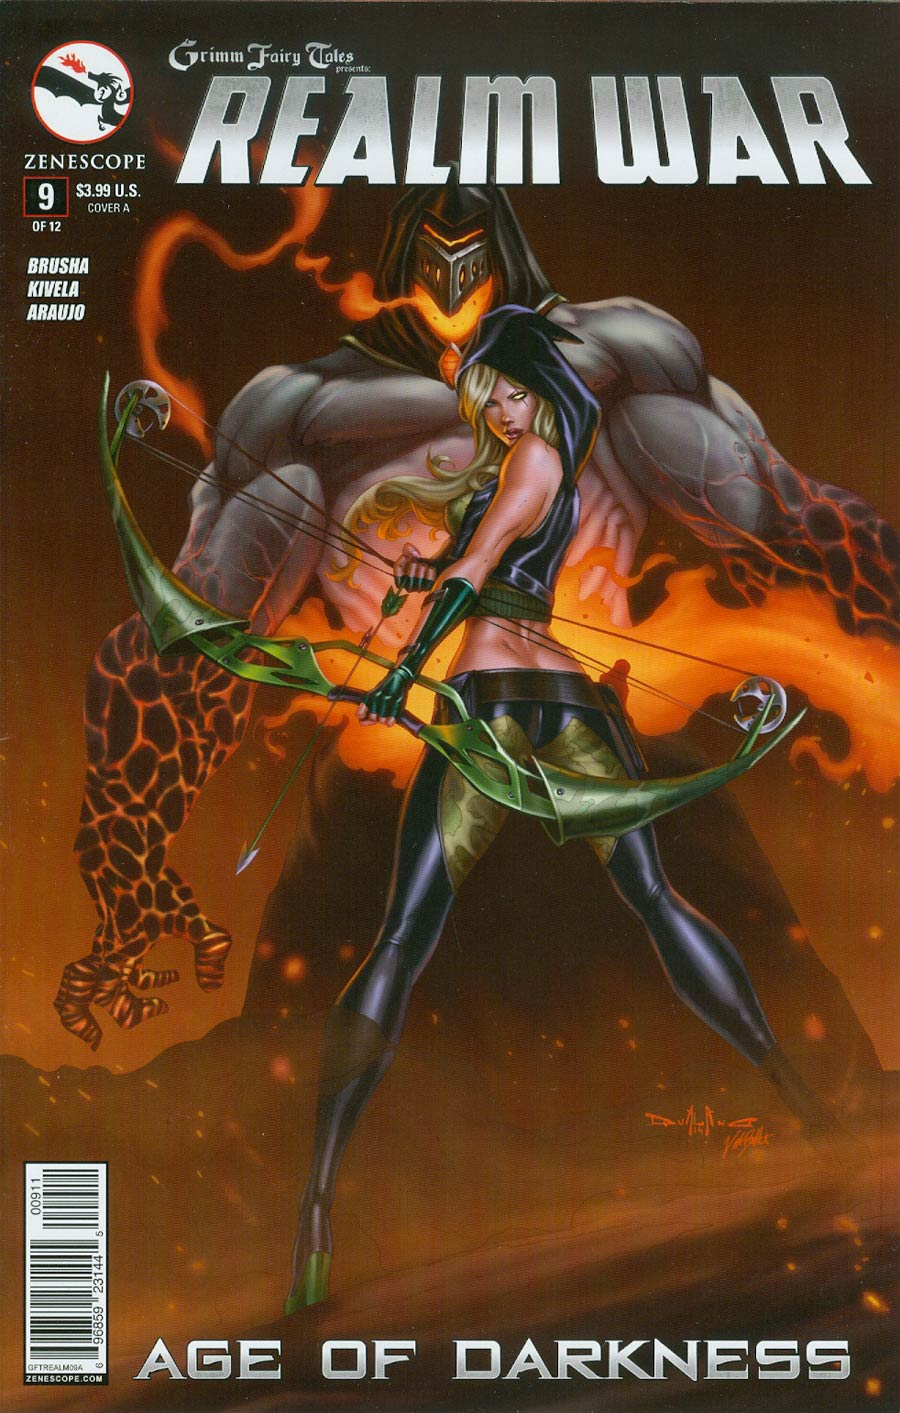 Grimm Fairy Tales Presents Realm War #9 Cover A Pasquale Qualano (Age Of Darkness Tie-In)